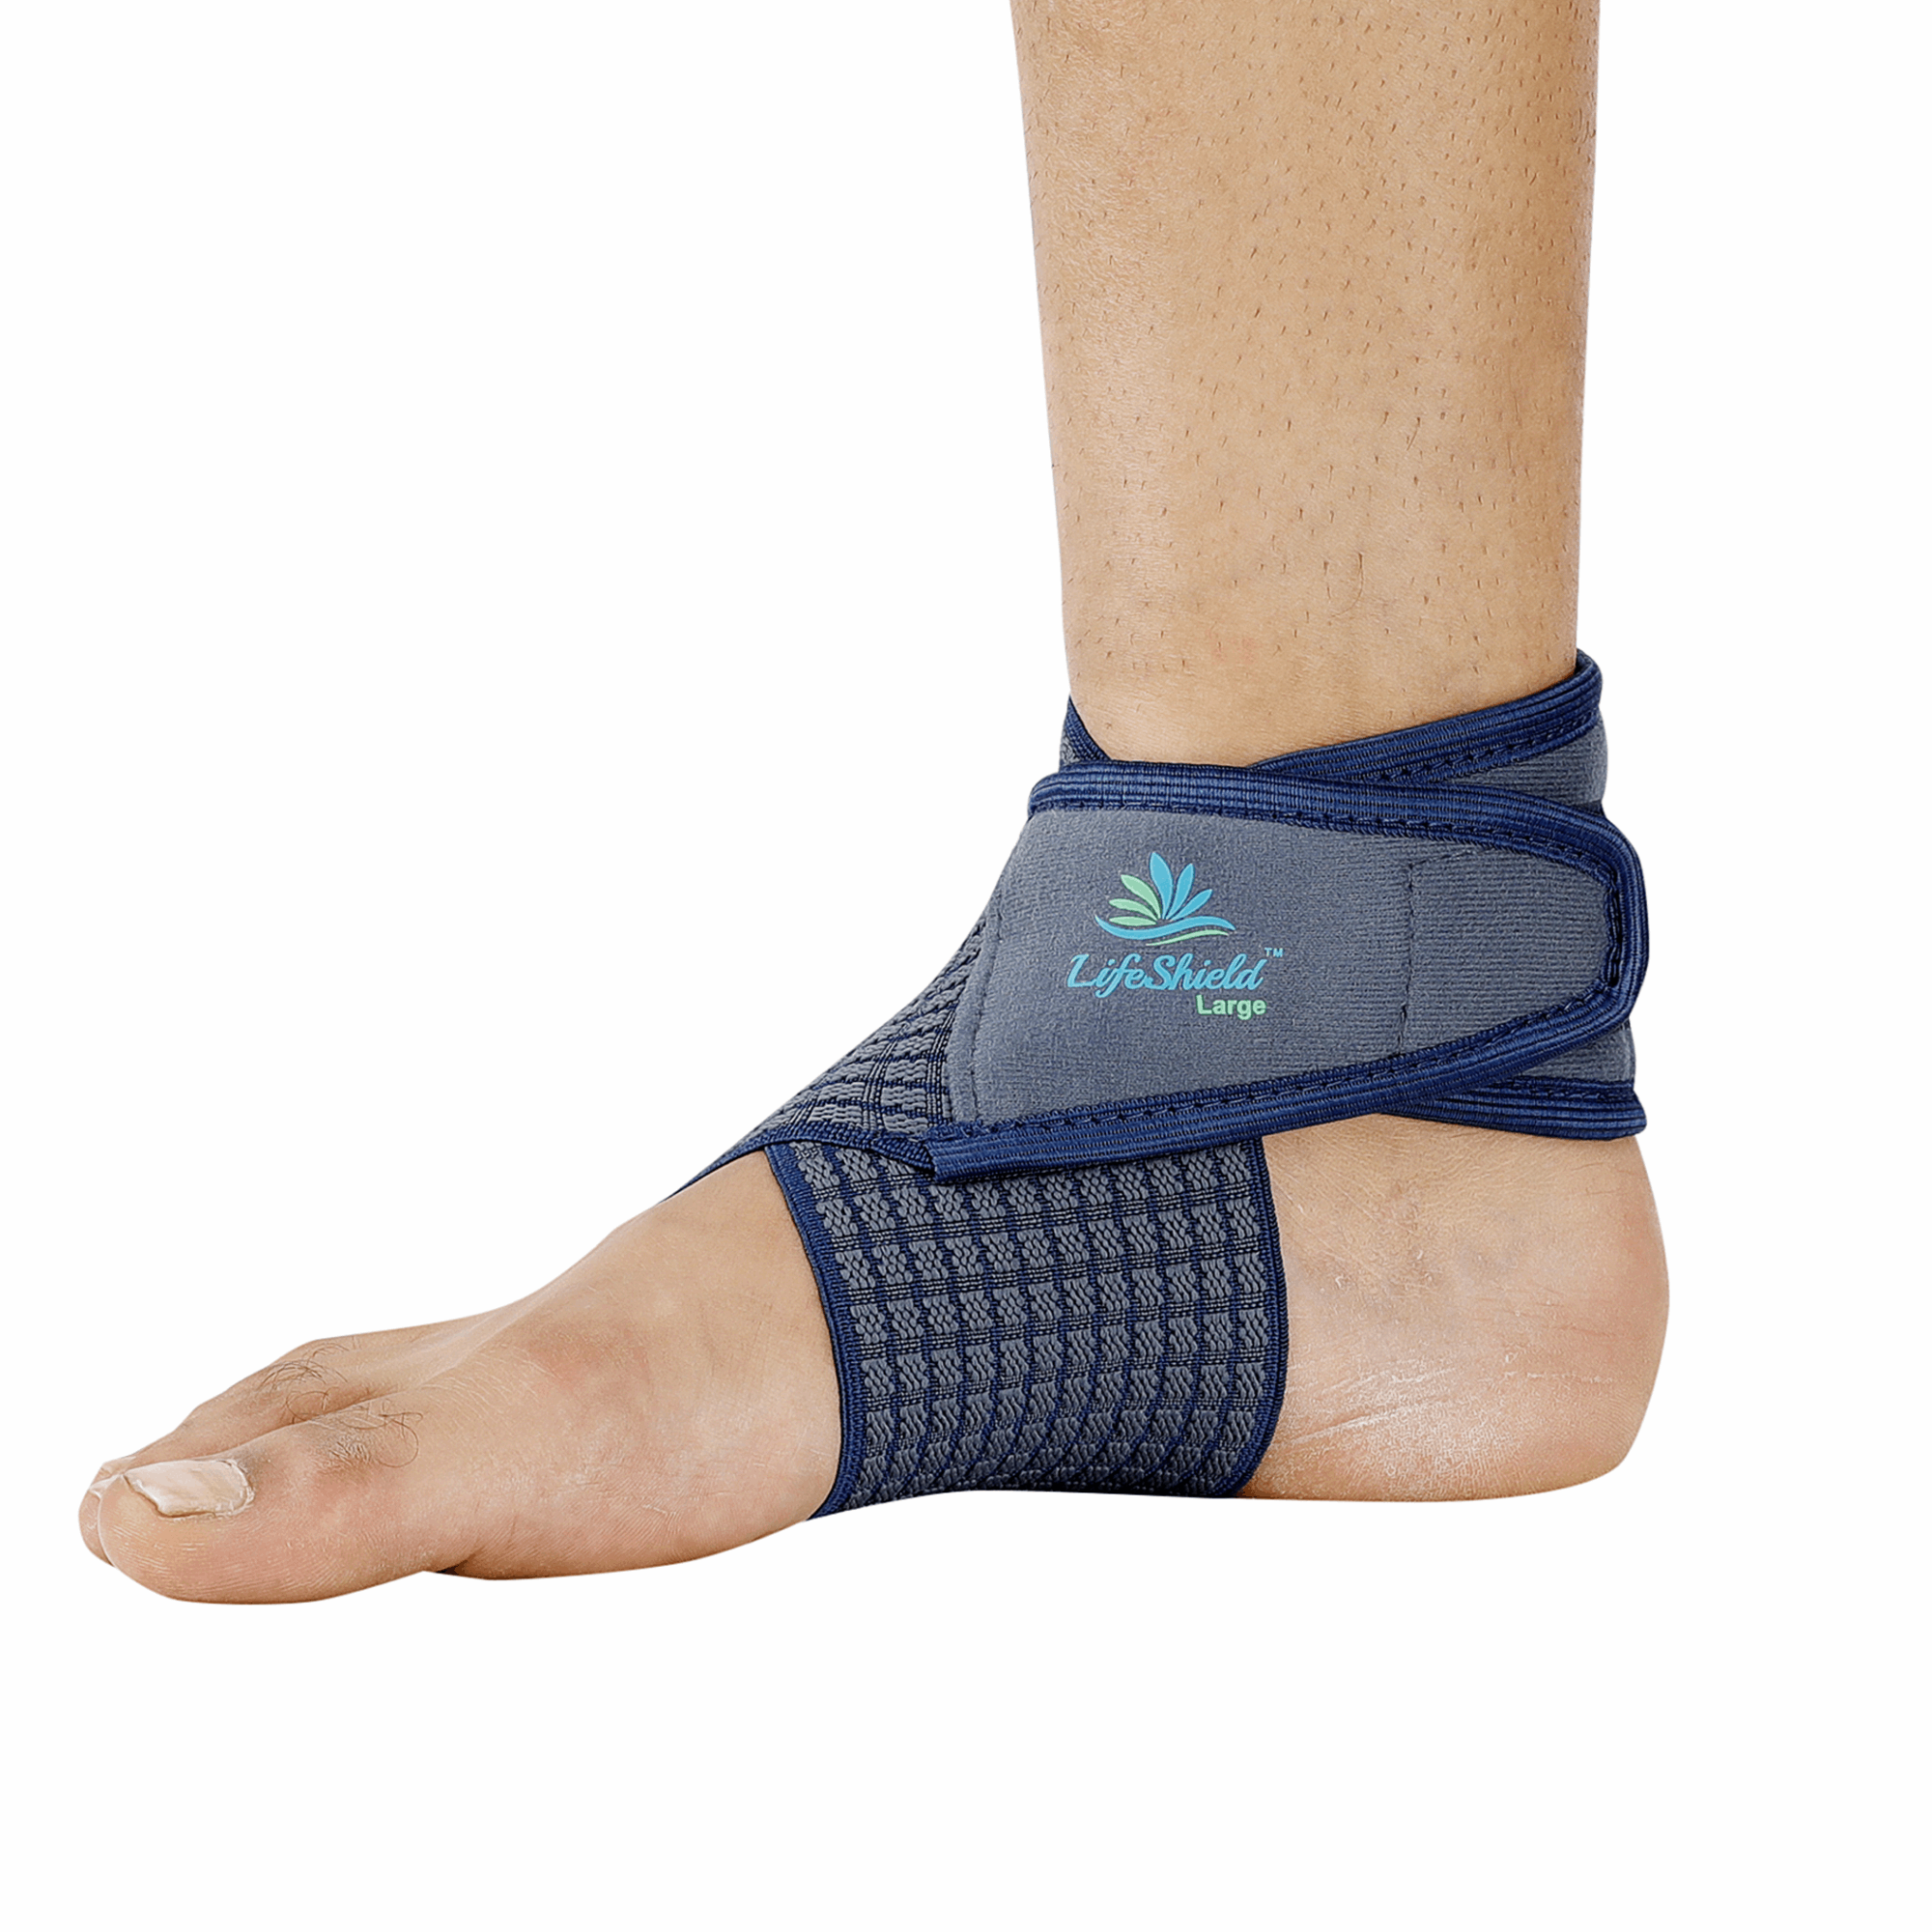 Lifeshield Ankle Binder Strap Belt: For Best Grip To Ankle While Jogging Or Sprain (Small)